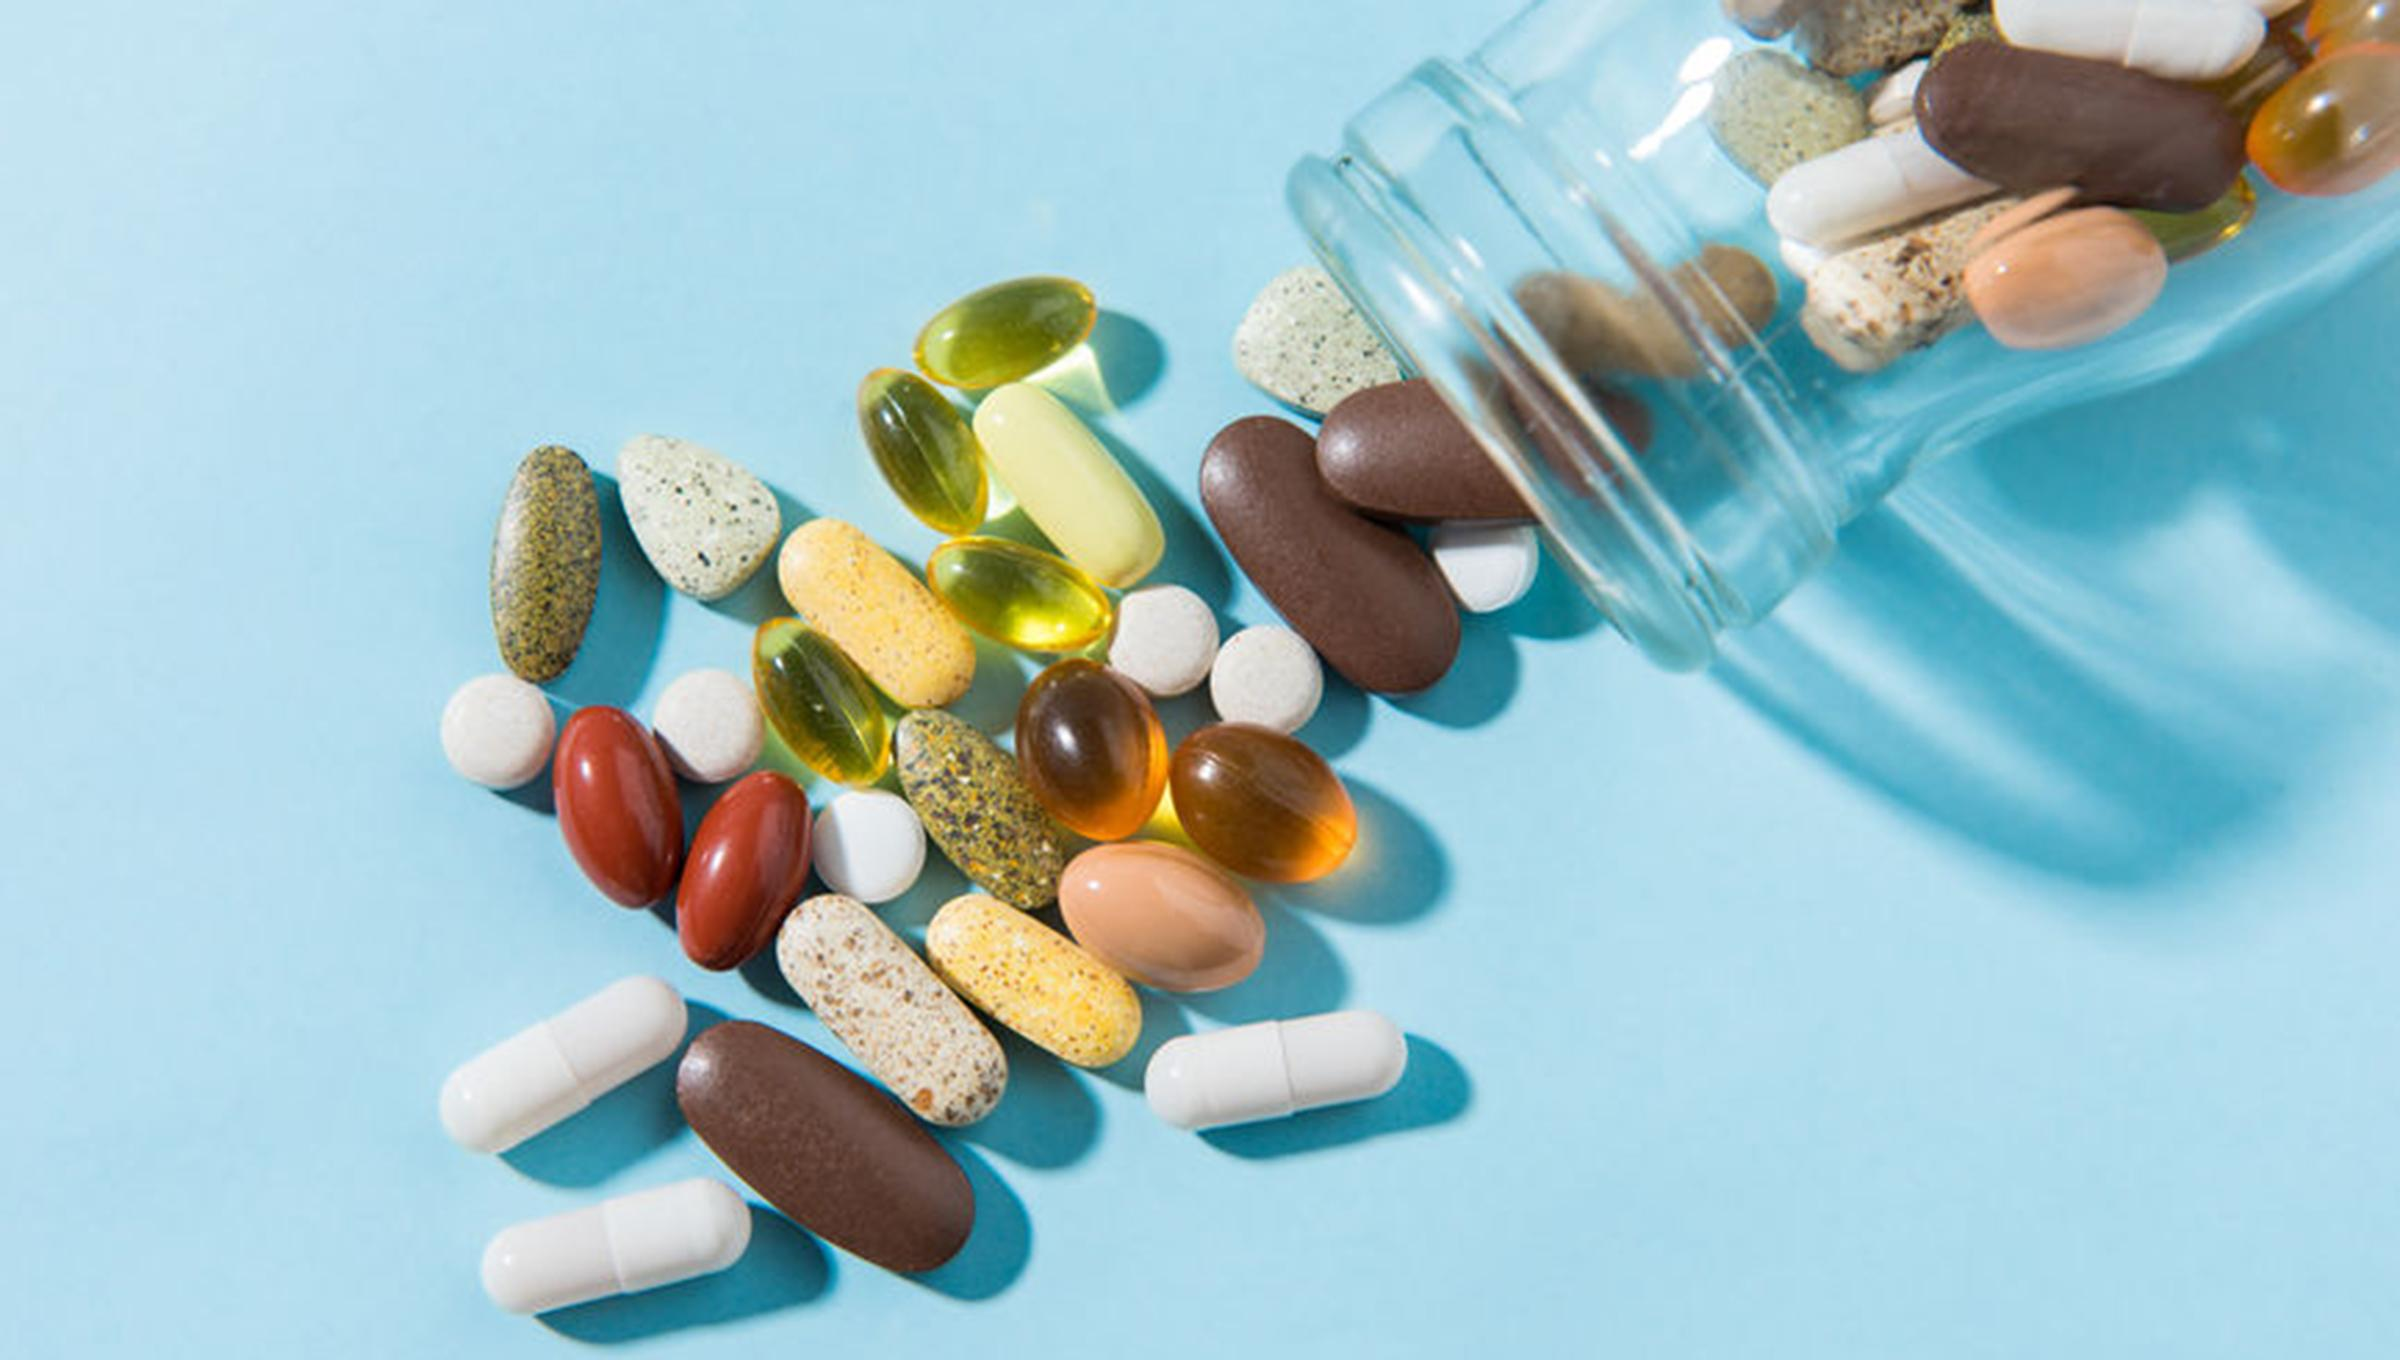 Use of Dietary supplements for chronic pain treatment